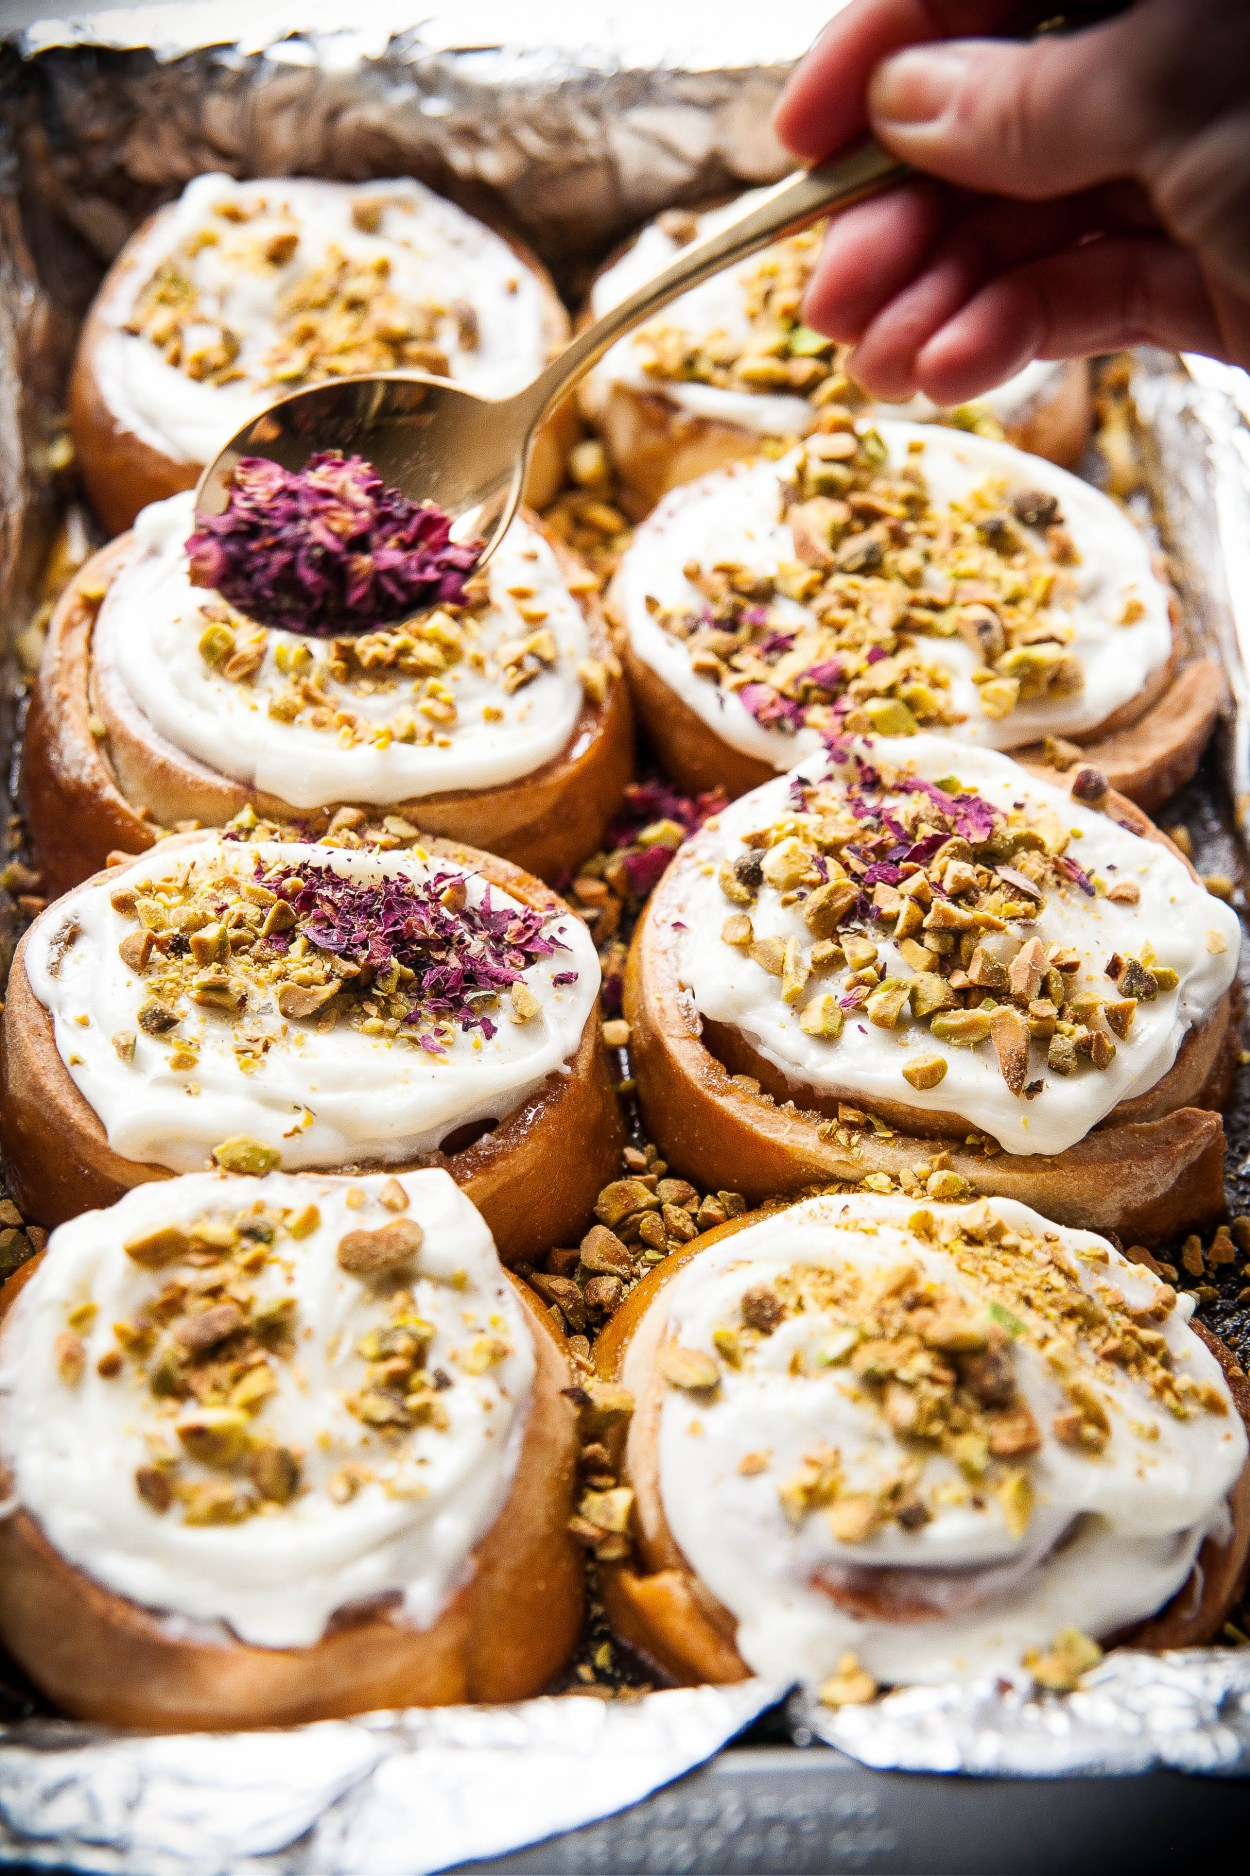 Cardamom Rolls with Pistachio Rose Frosting from thebakingbird.com | foodiecrush.com